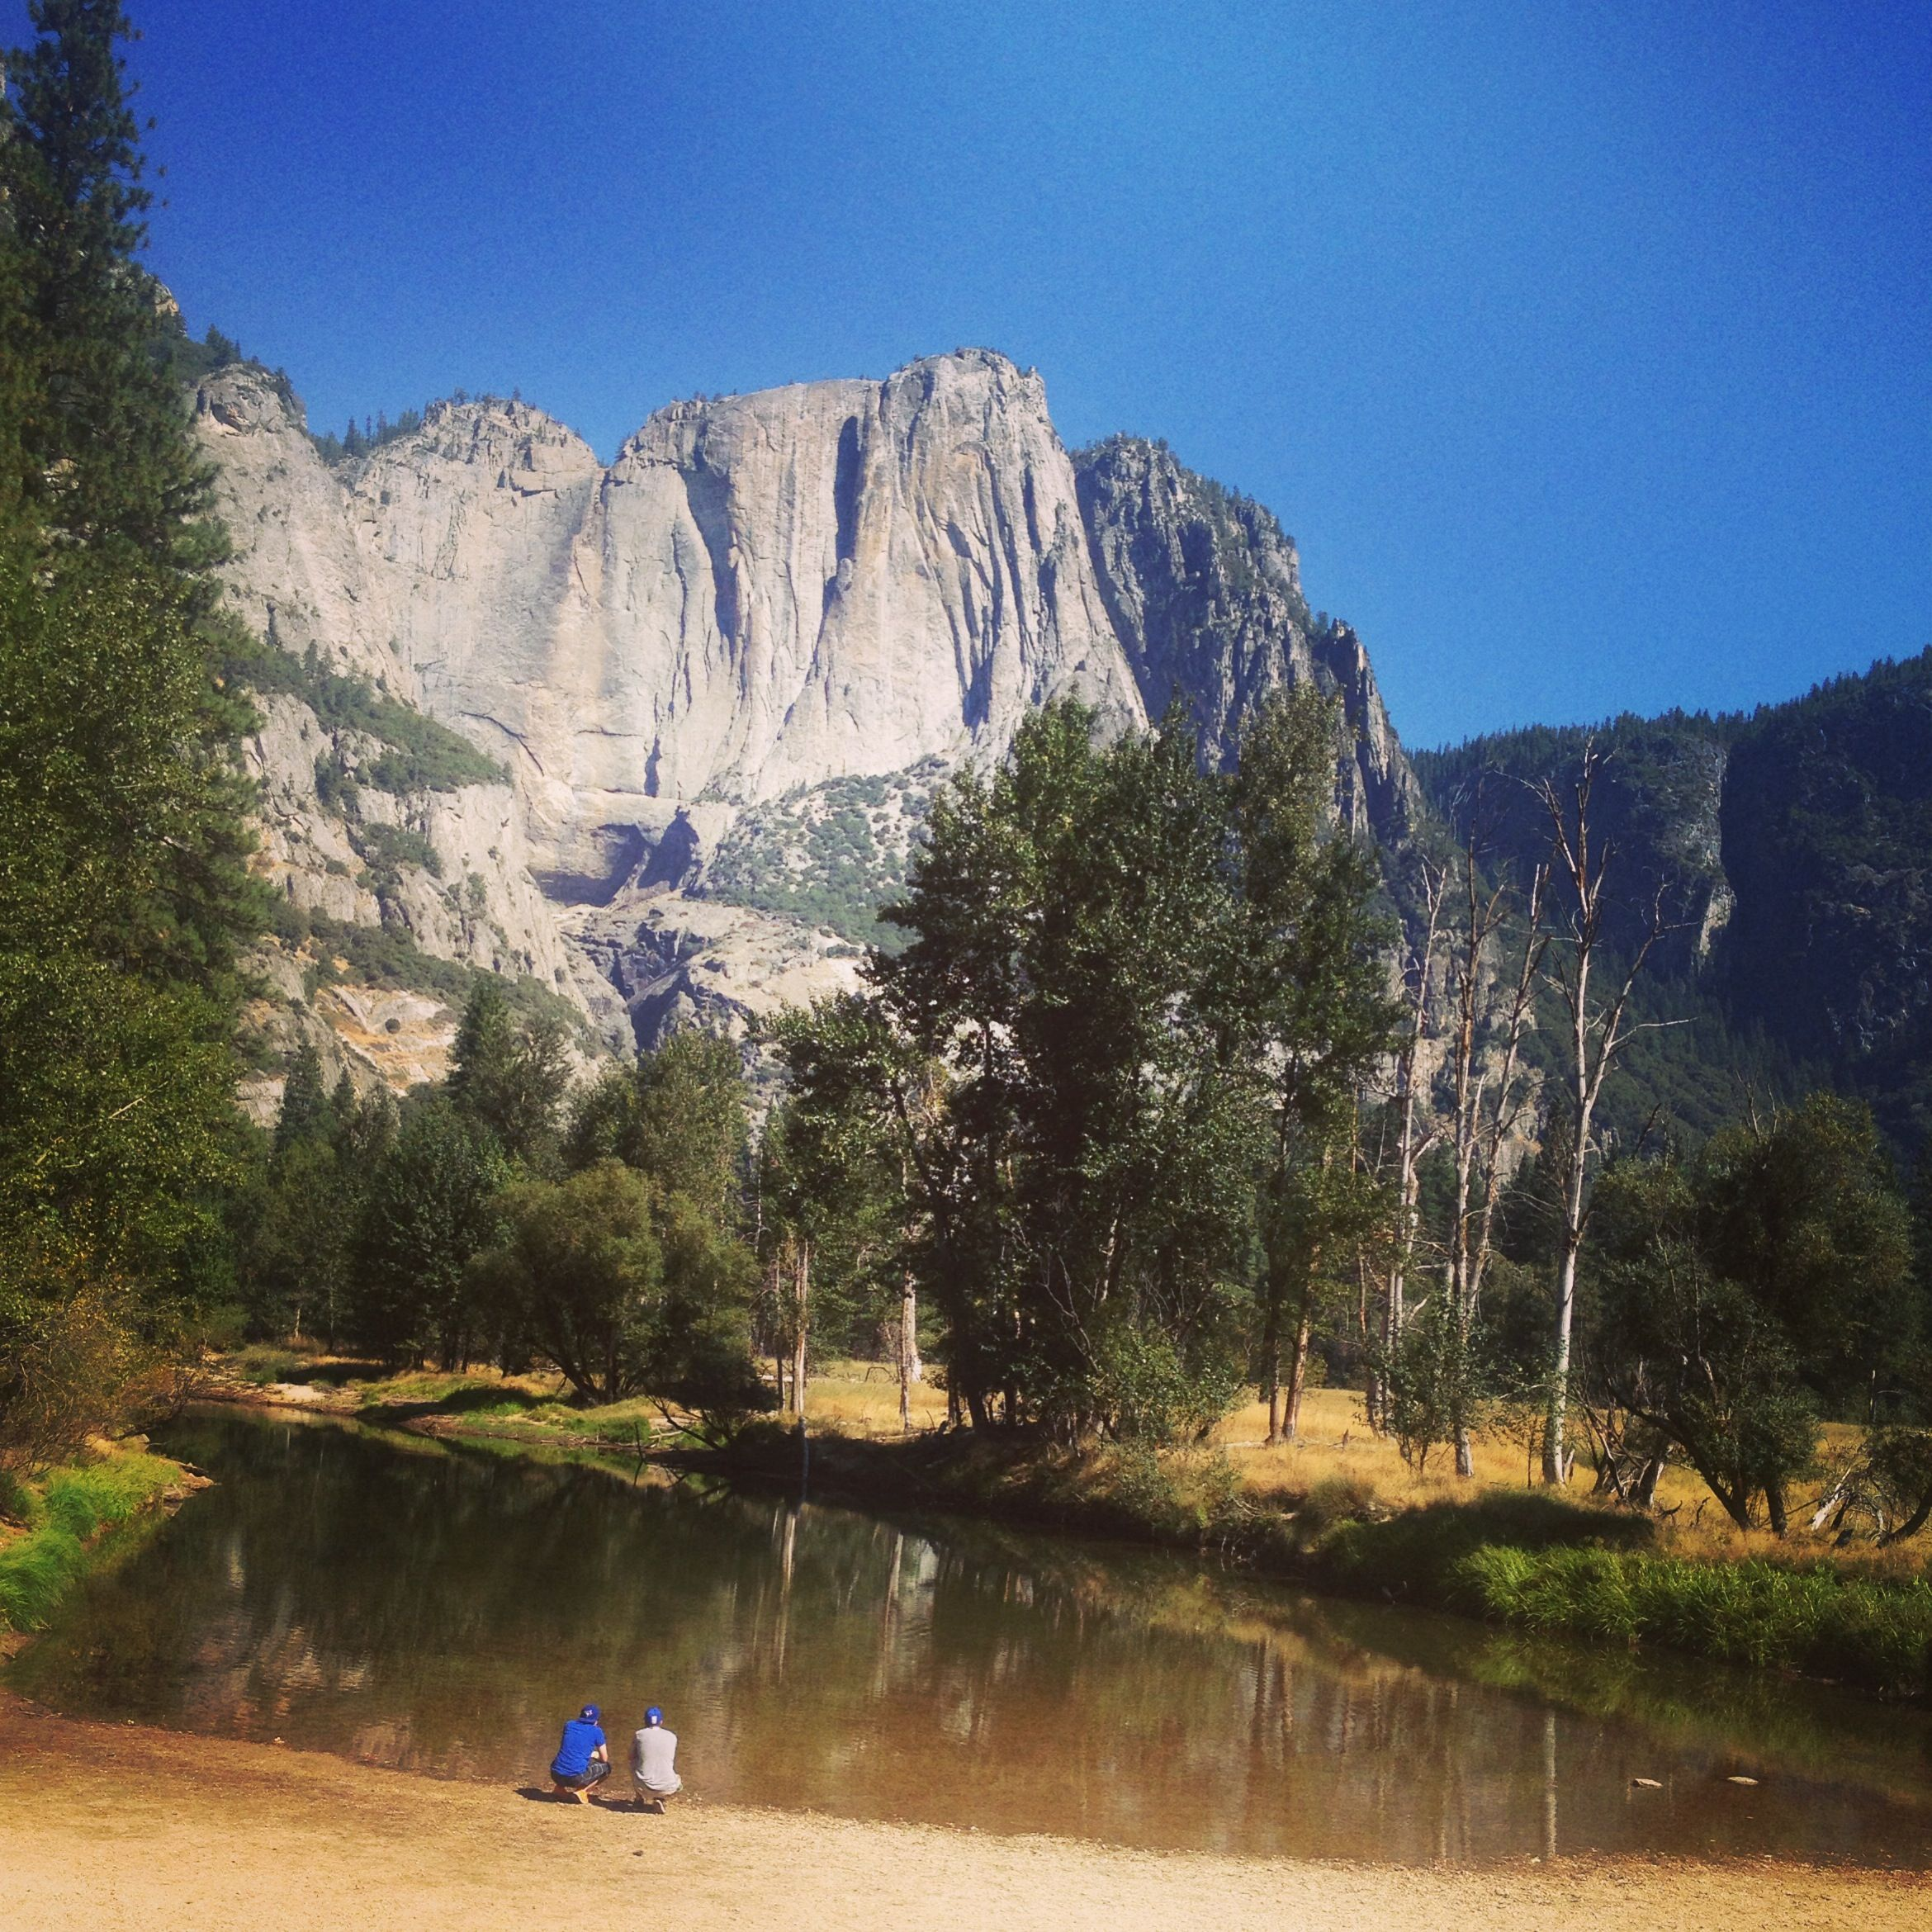 Yosemite National Park Rivers: Brothers Crouching At The Edge Of The Merced River In